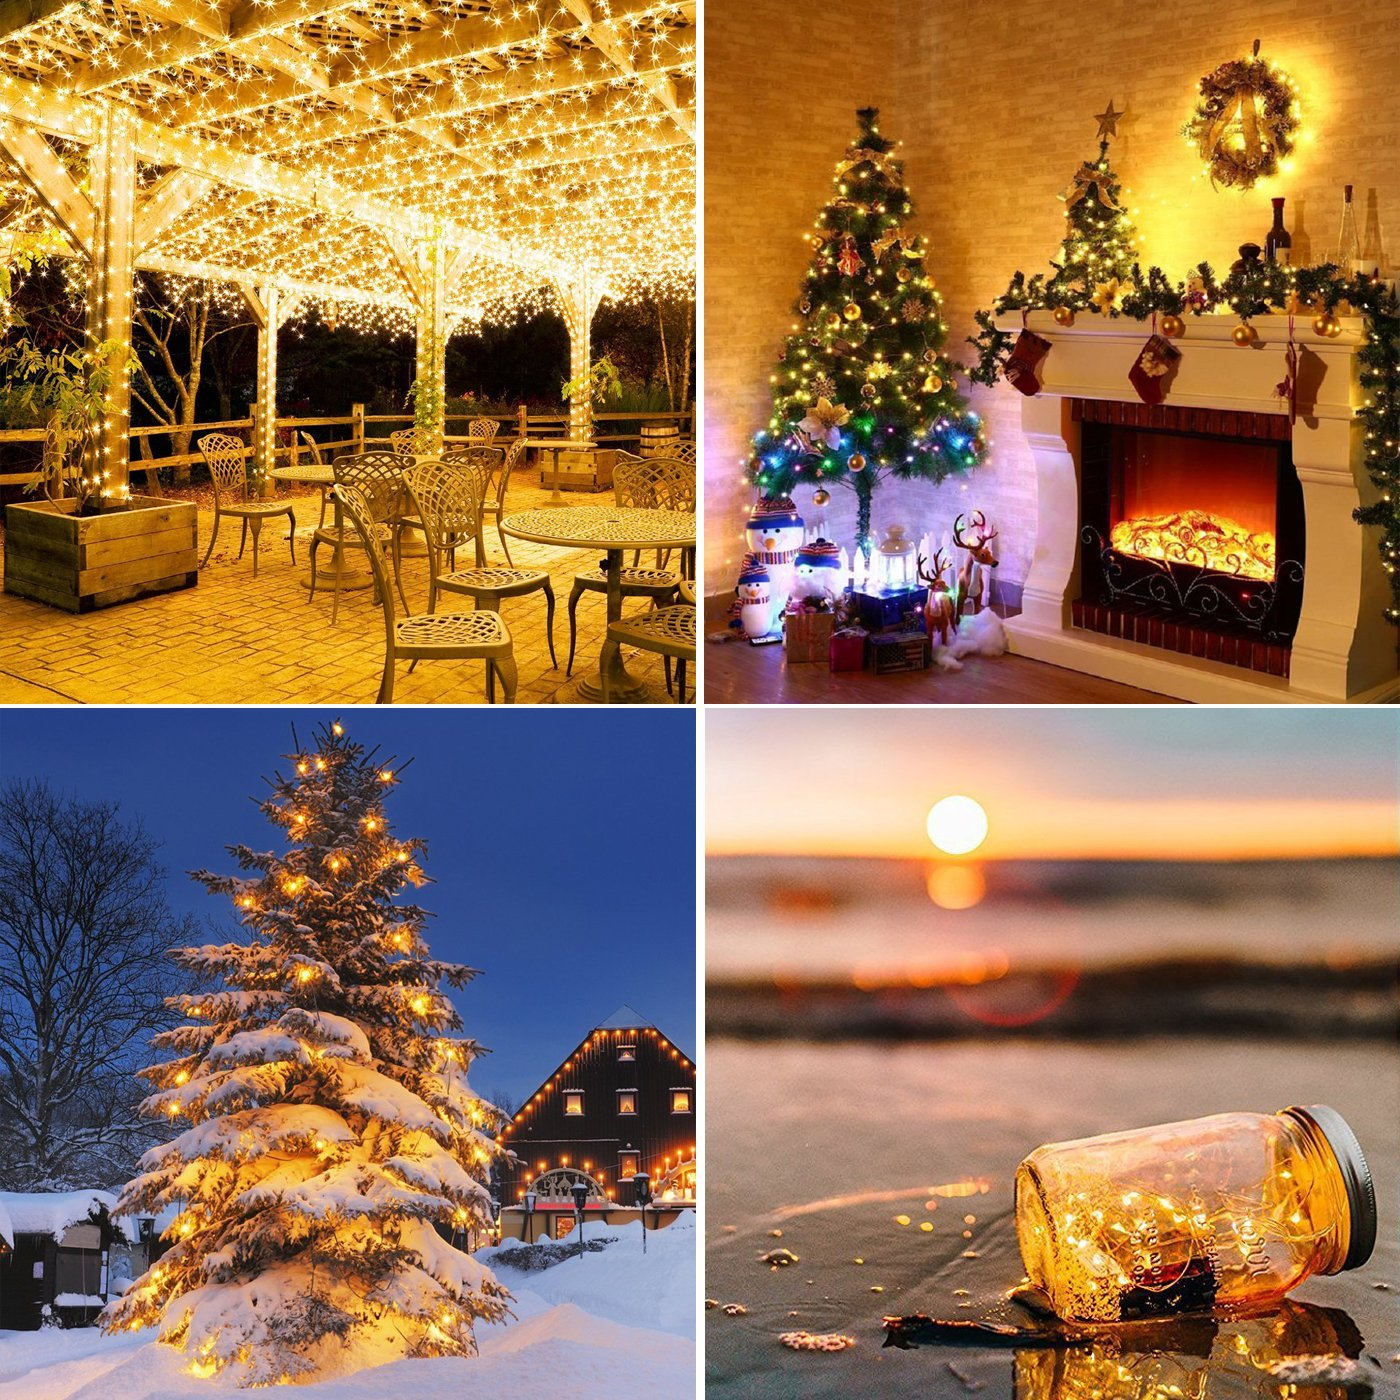 LED String Lights 99ft 300 LEDS Waterproof Copper Wire Fairy Light Twinkle Decorative Lighting for Christmas Tree,Festival Holiday,Birthday Party,Garden,Wedding,Indoor/& Outdoor,Home,Patio Warm white